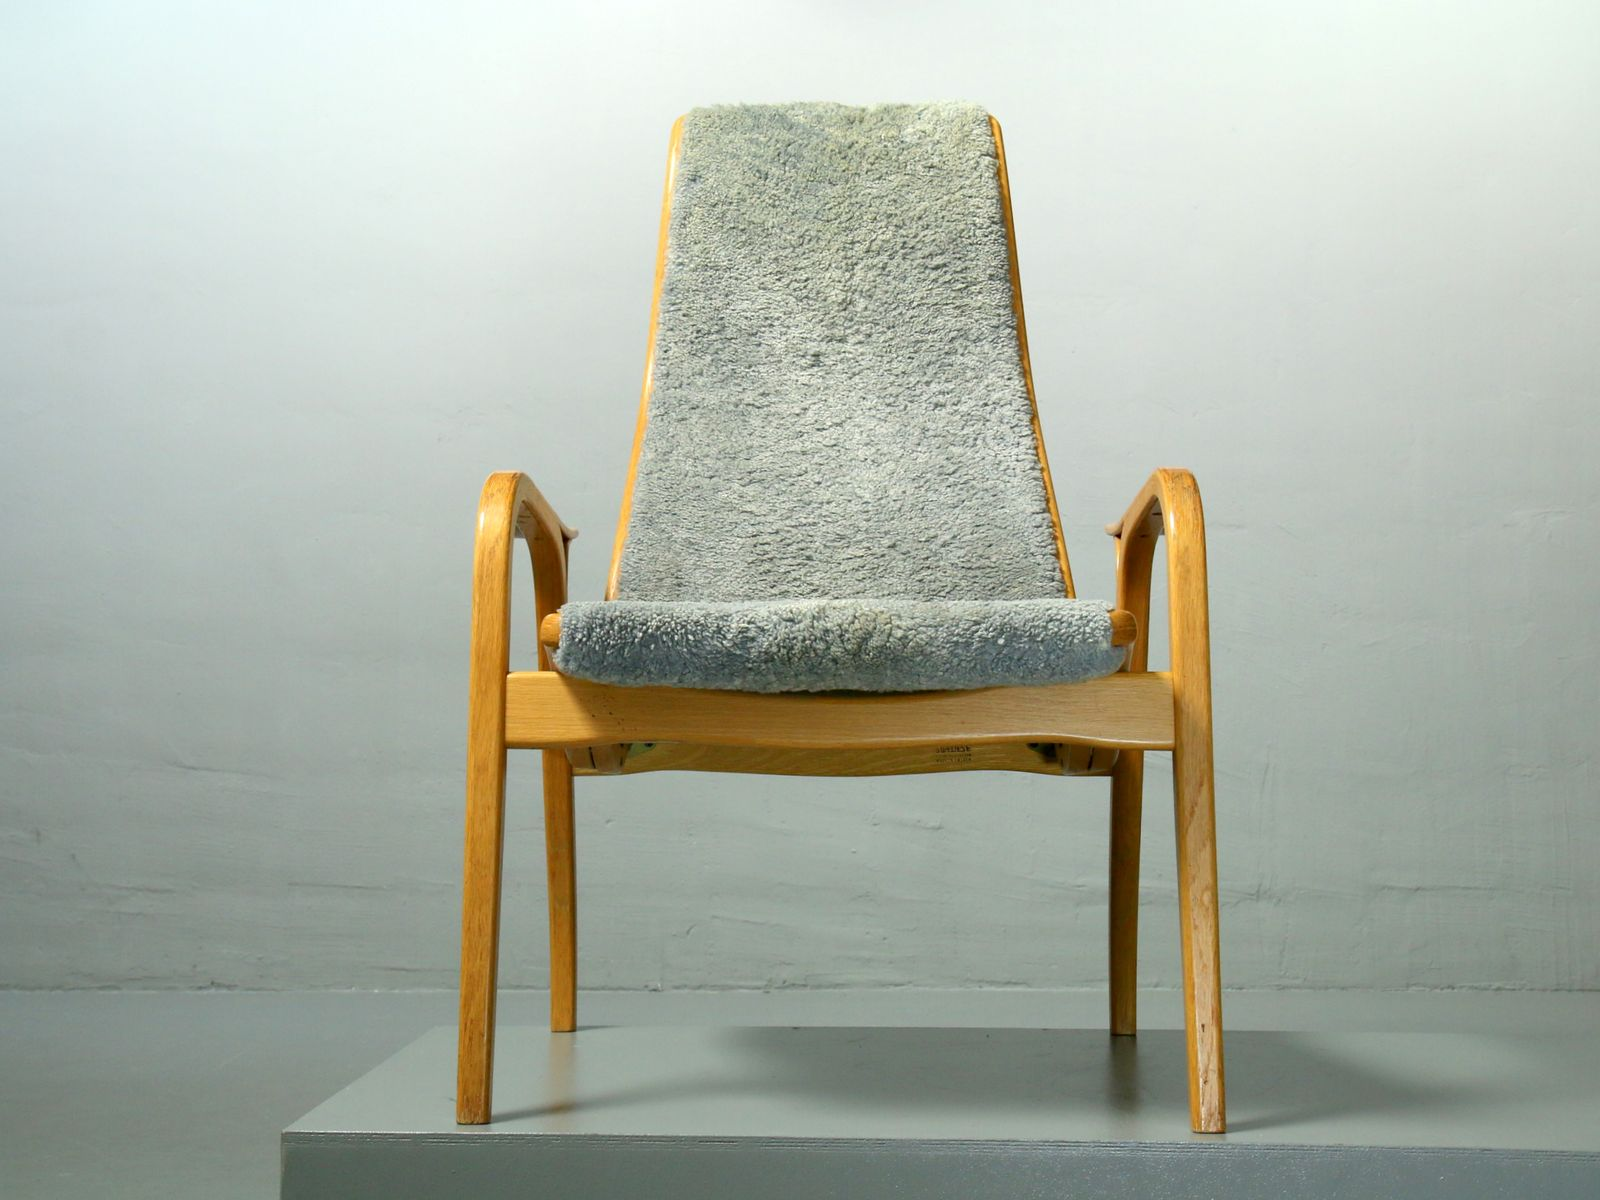 Vintage Lamino Sheepskin Lounge Chair by Yngve Ekström for Swedese, 1980s for sale at Pamono